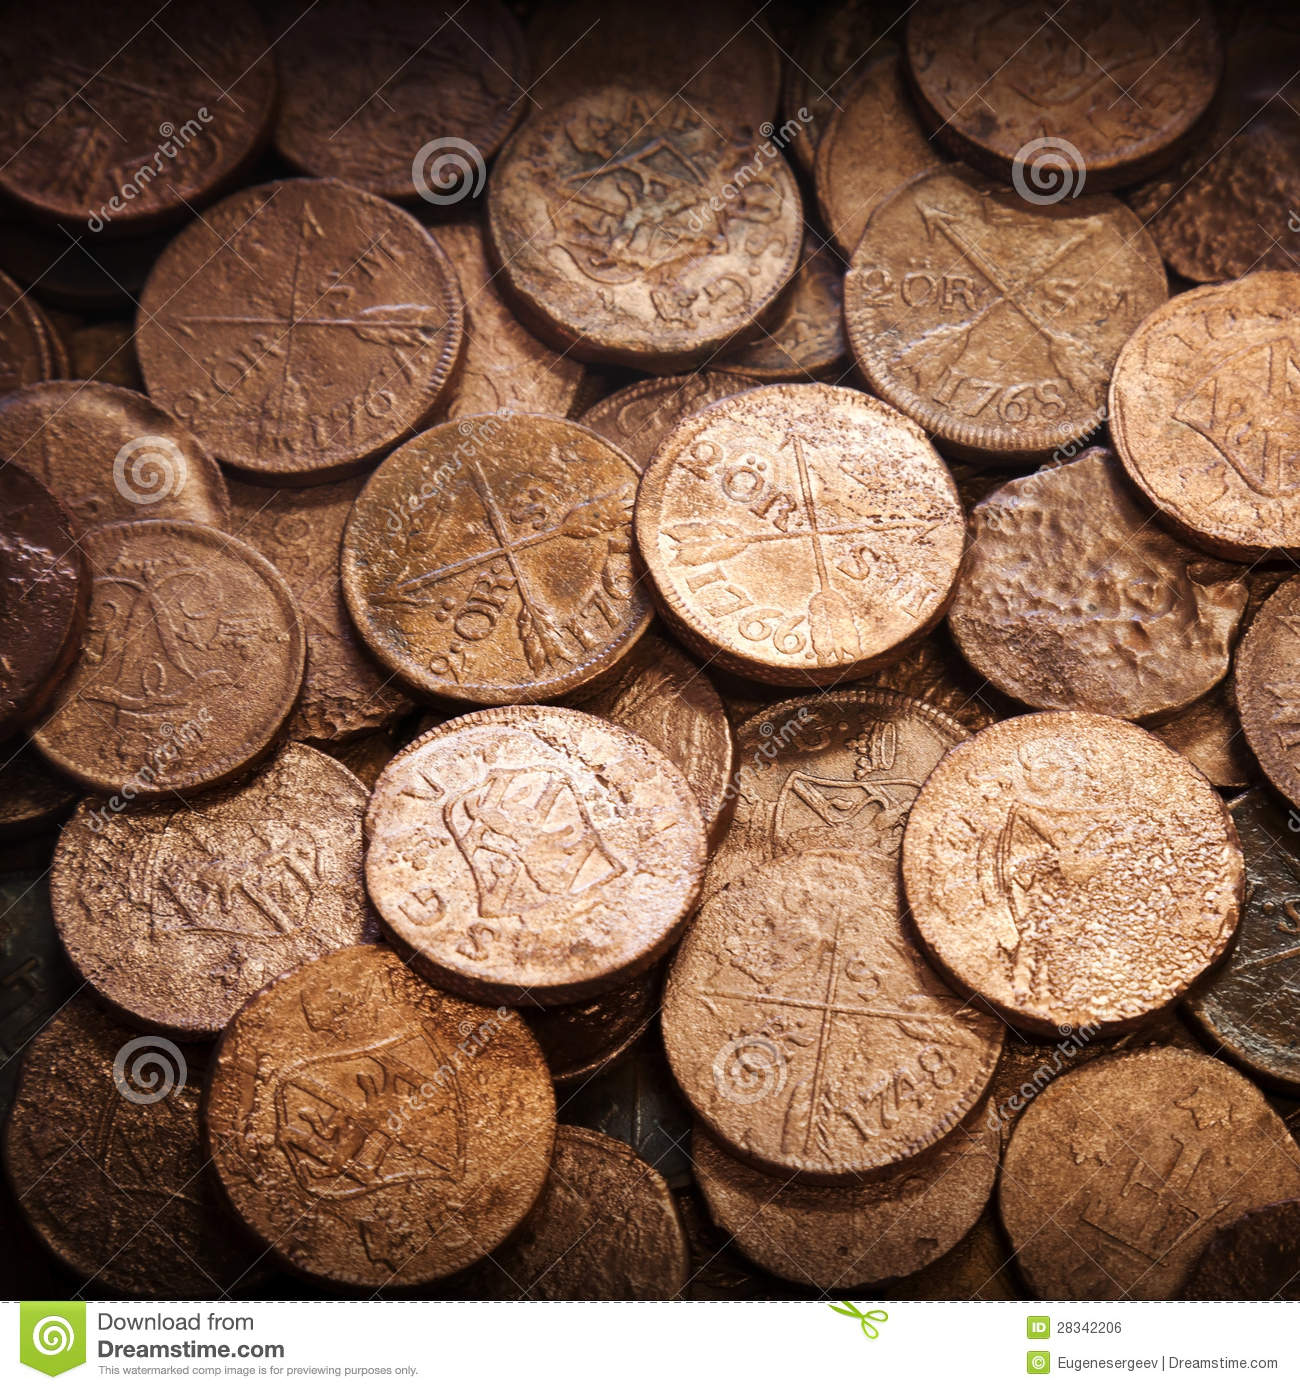 old coins stock image - photo #30